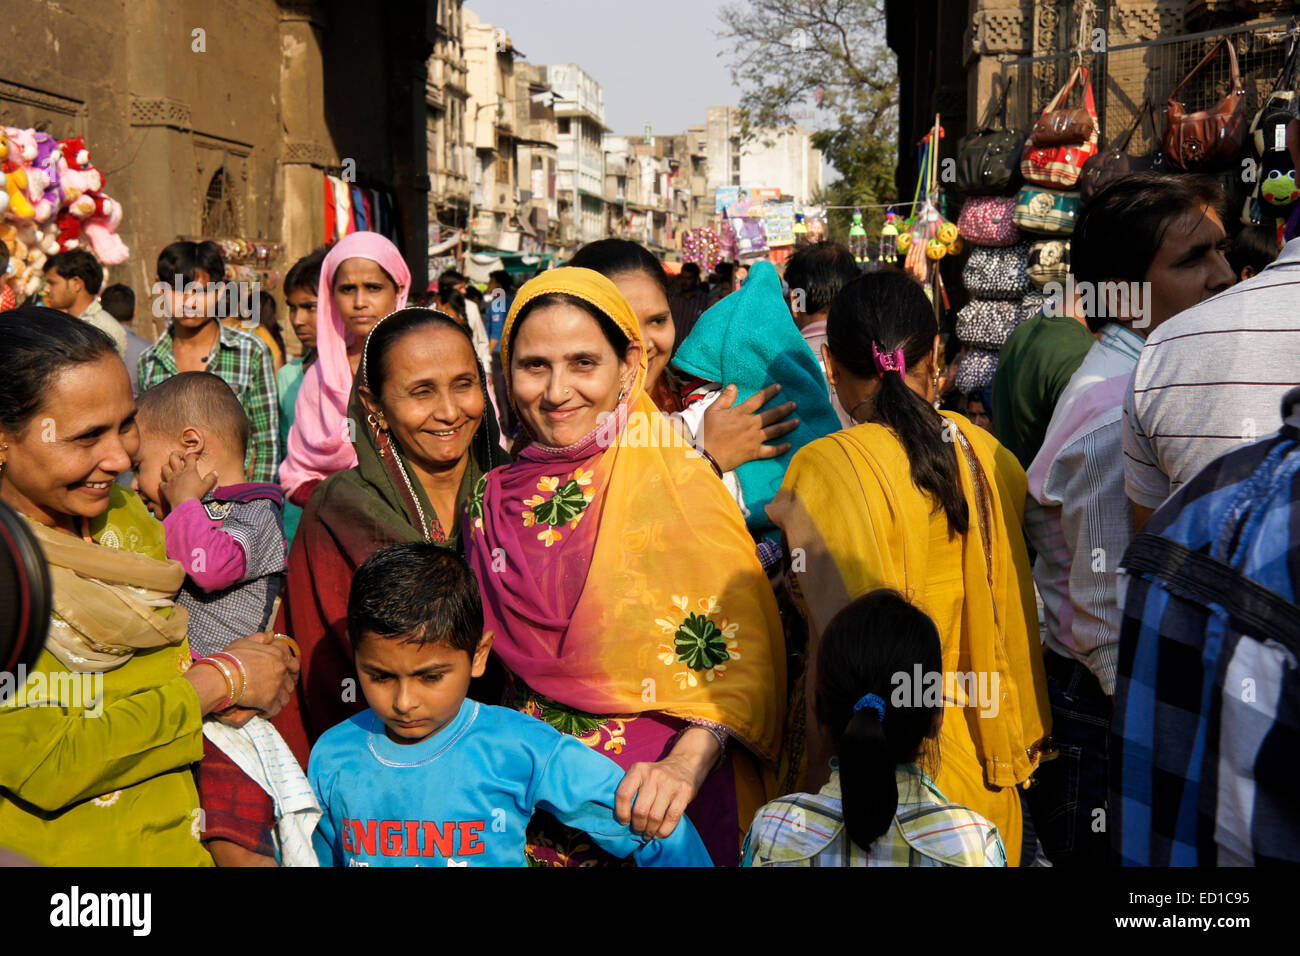 Crowded market in Old Ahmedabad, Gujarat, India - Stock Image